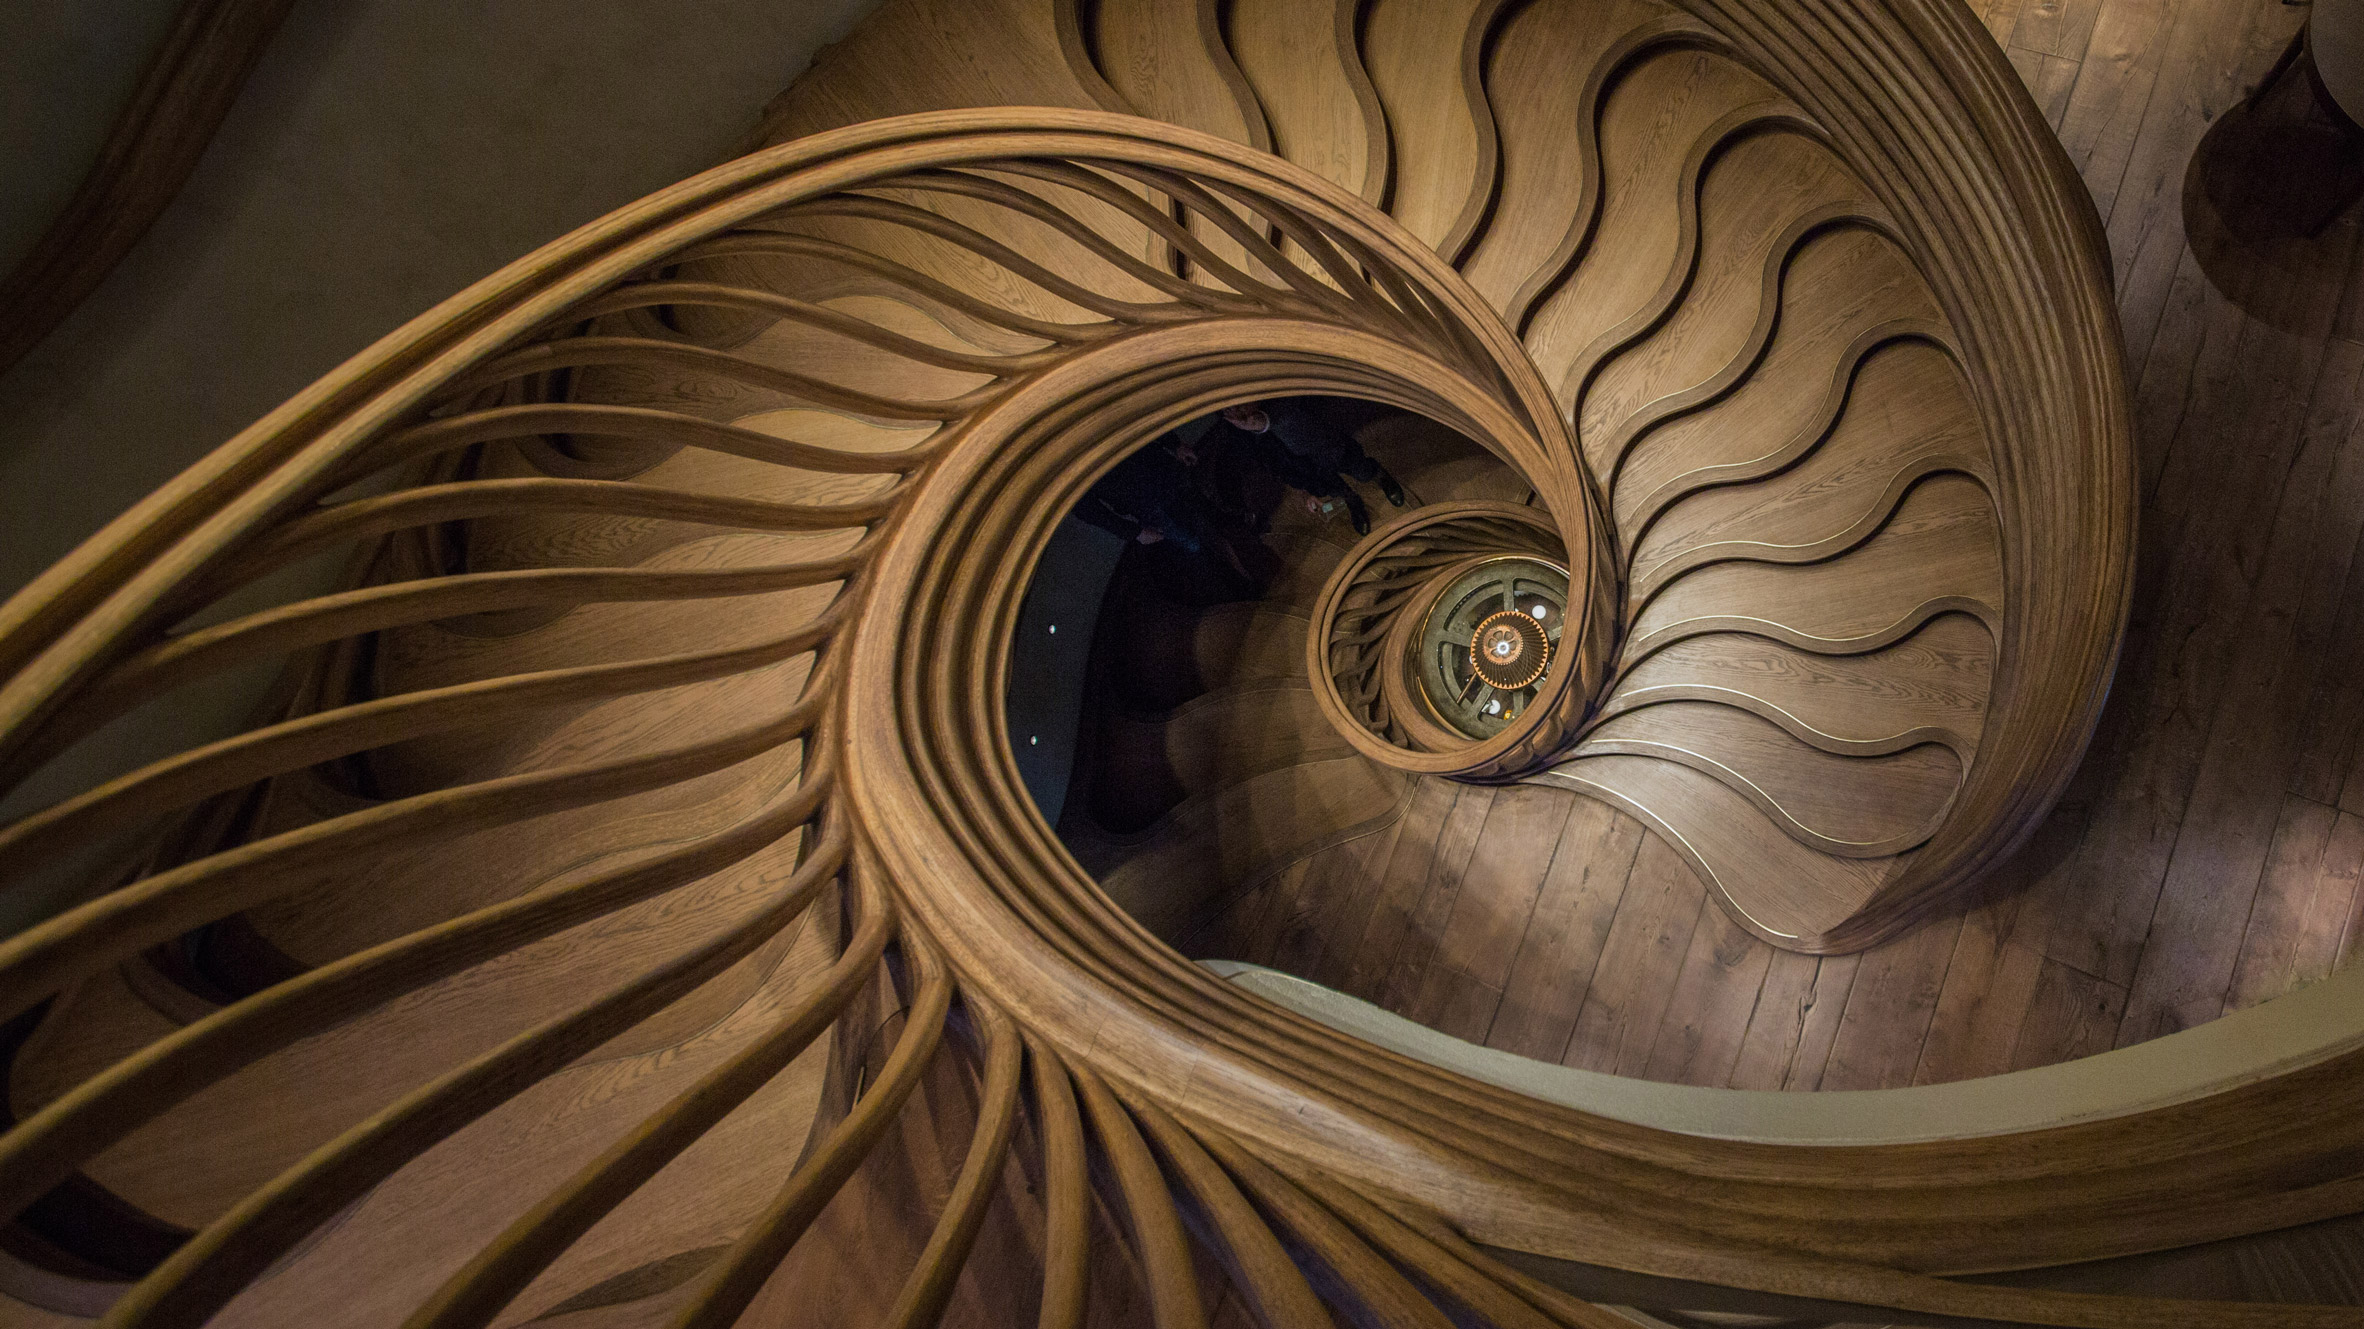 Stairstalk, UK, by Atmos Studio